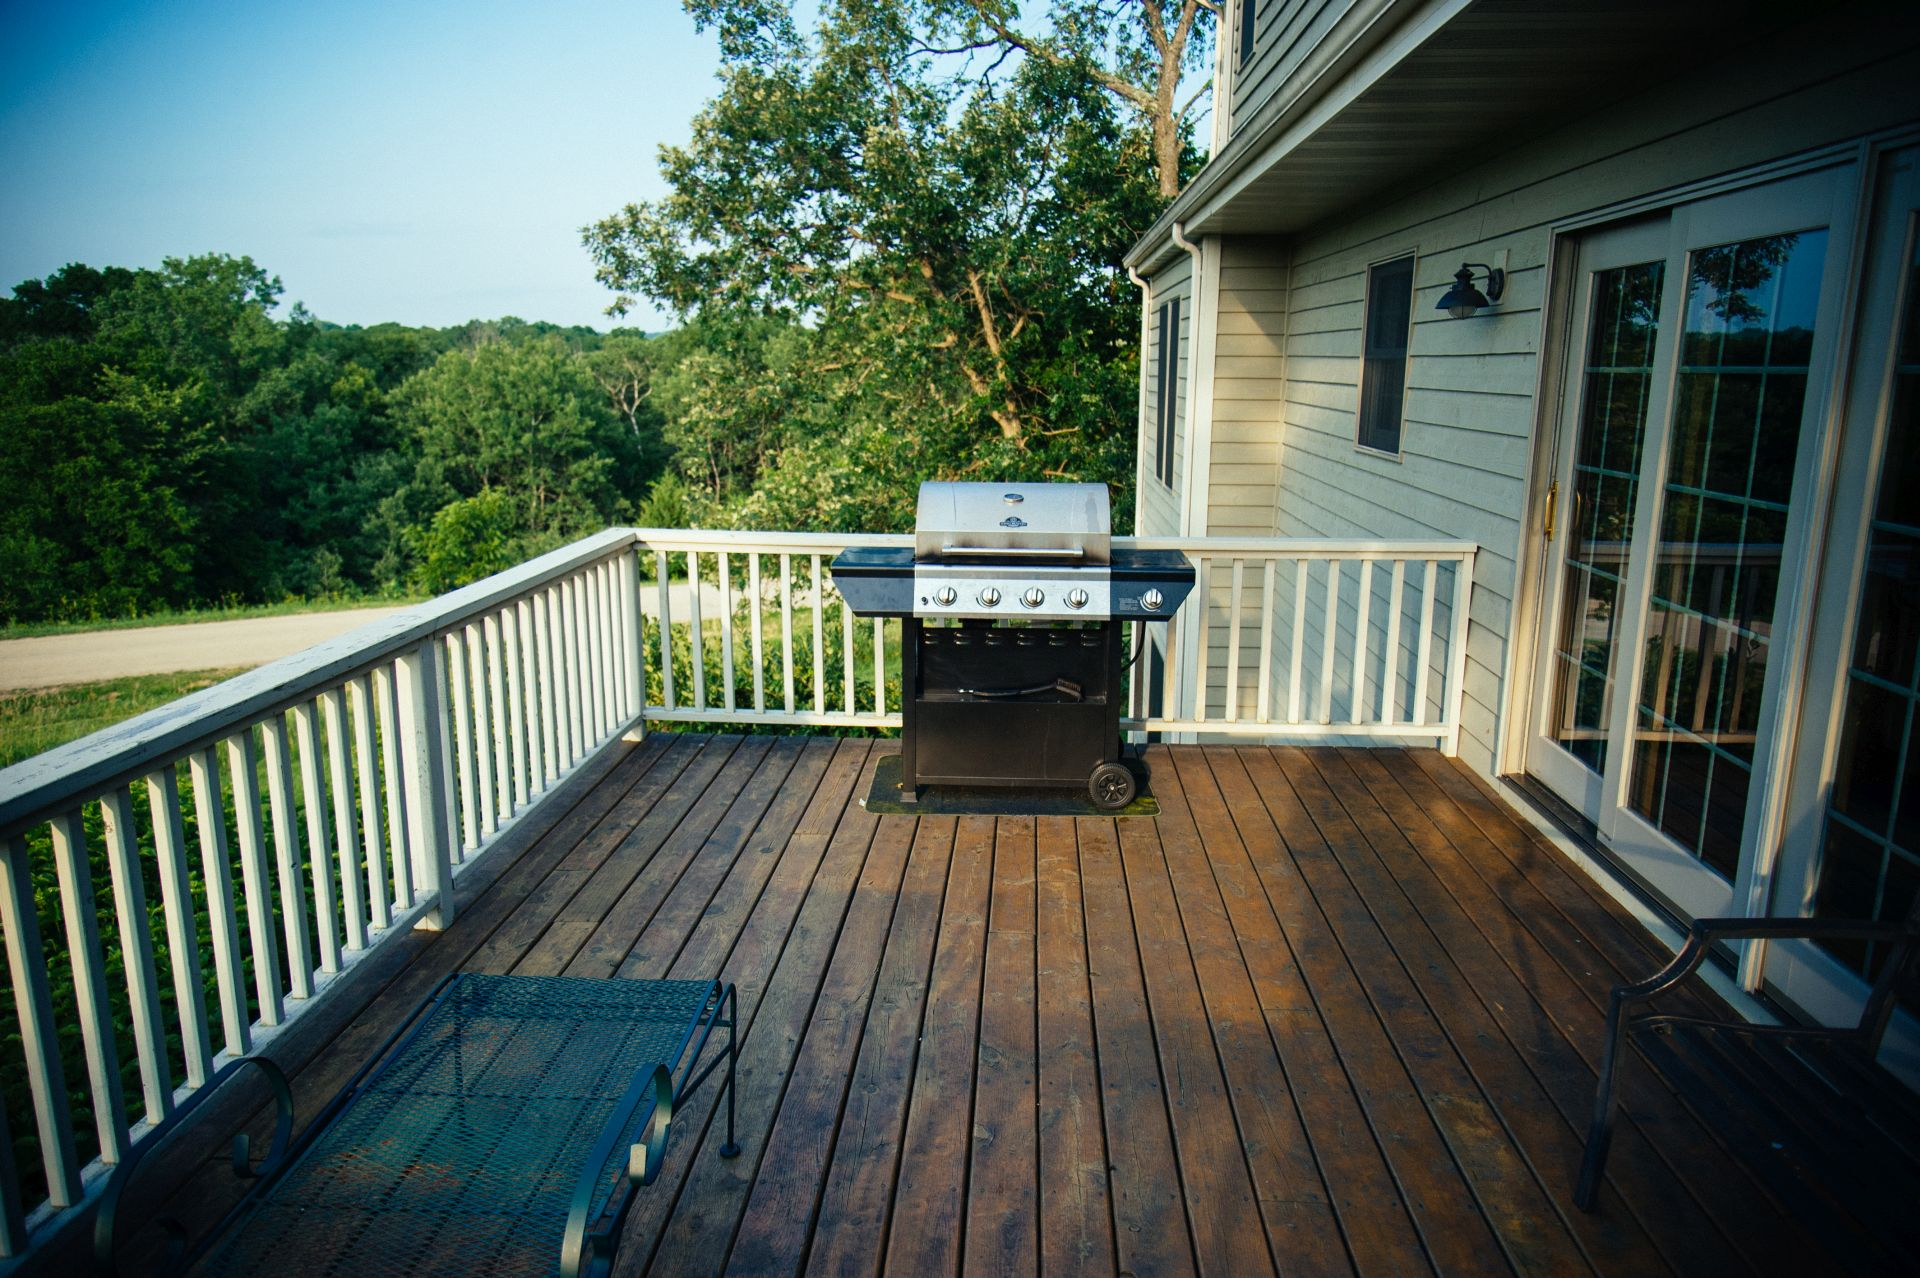 One of the outside amenities of Galena Luxury Home is the gas grill